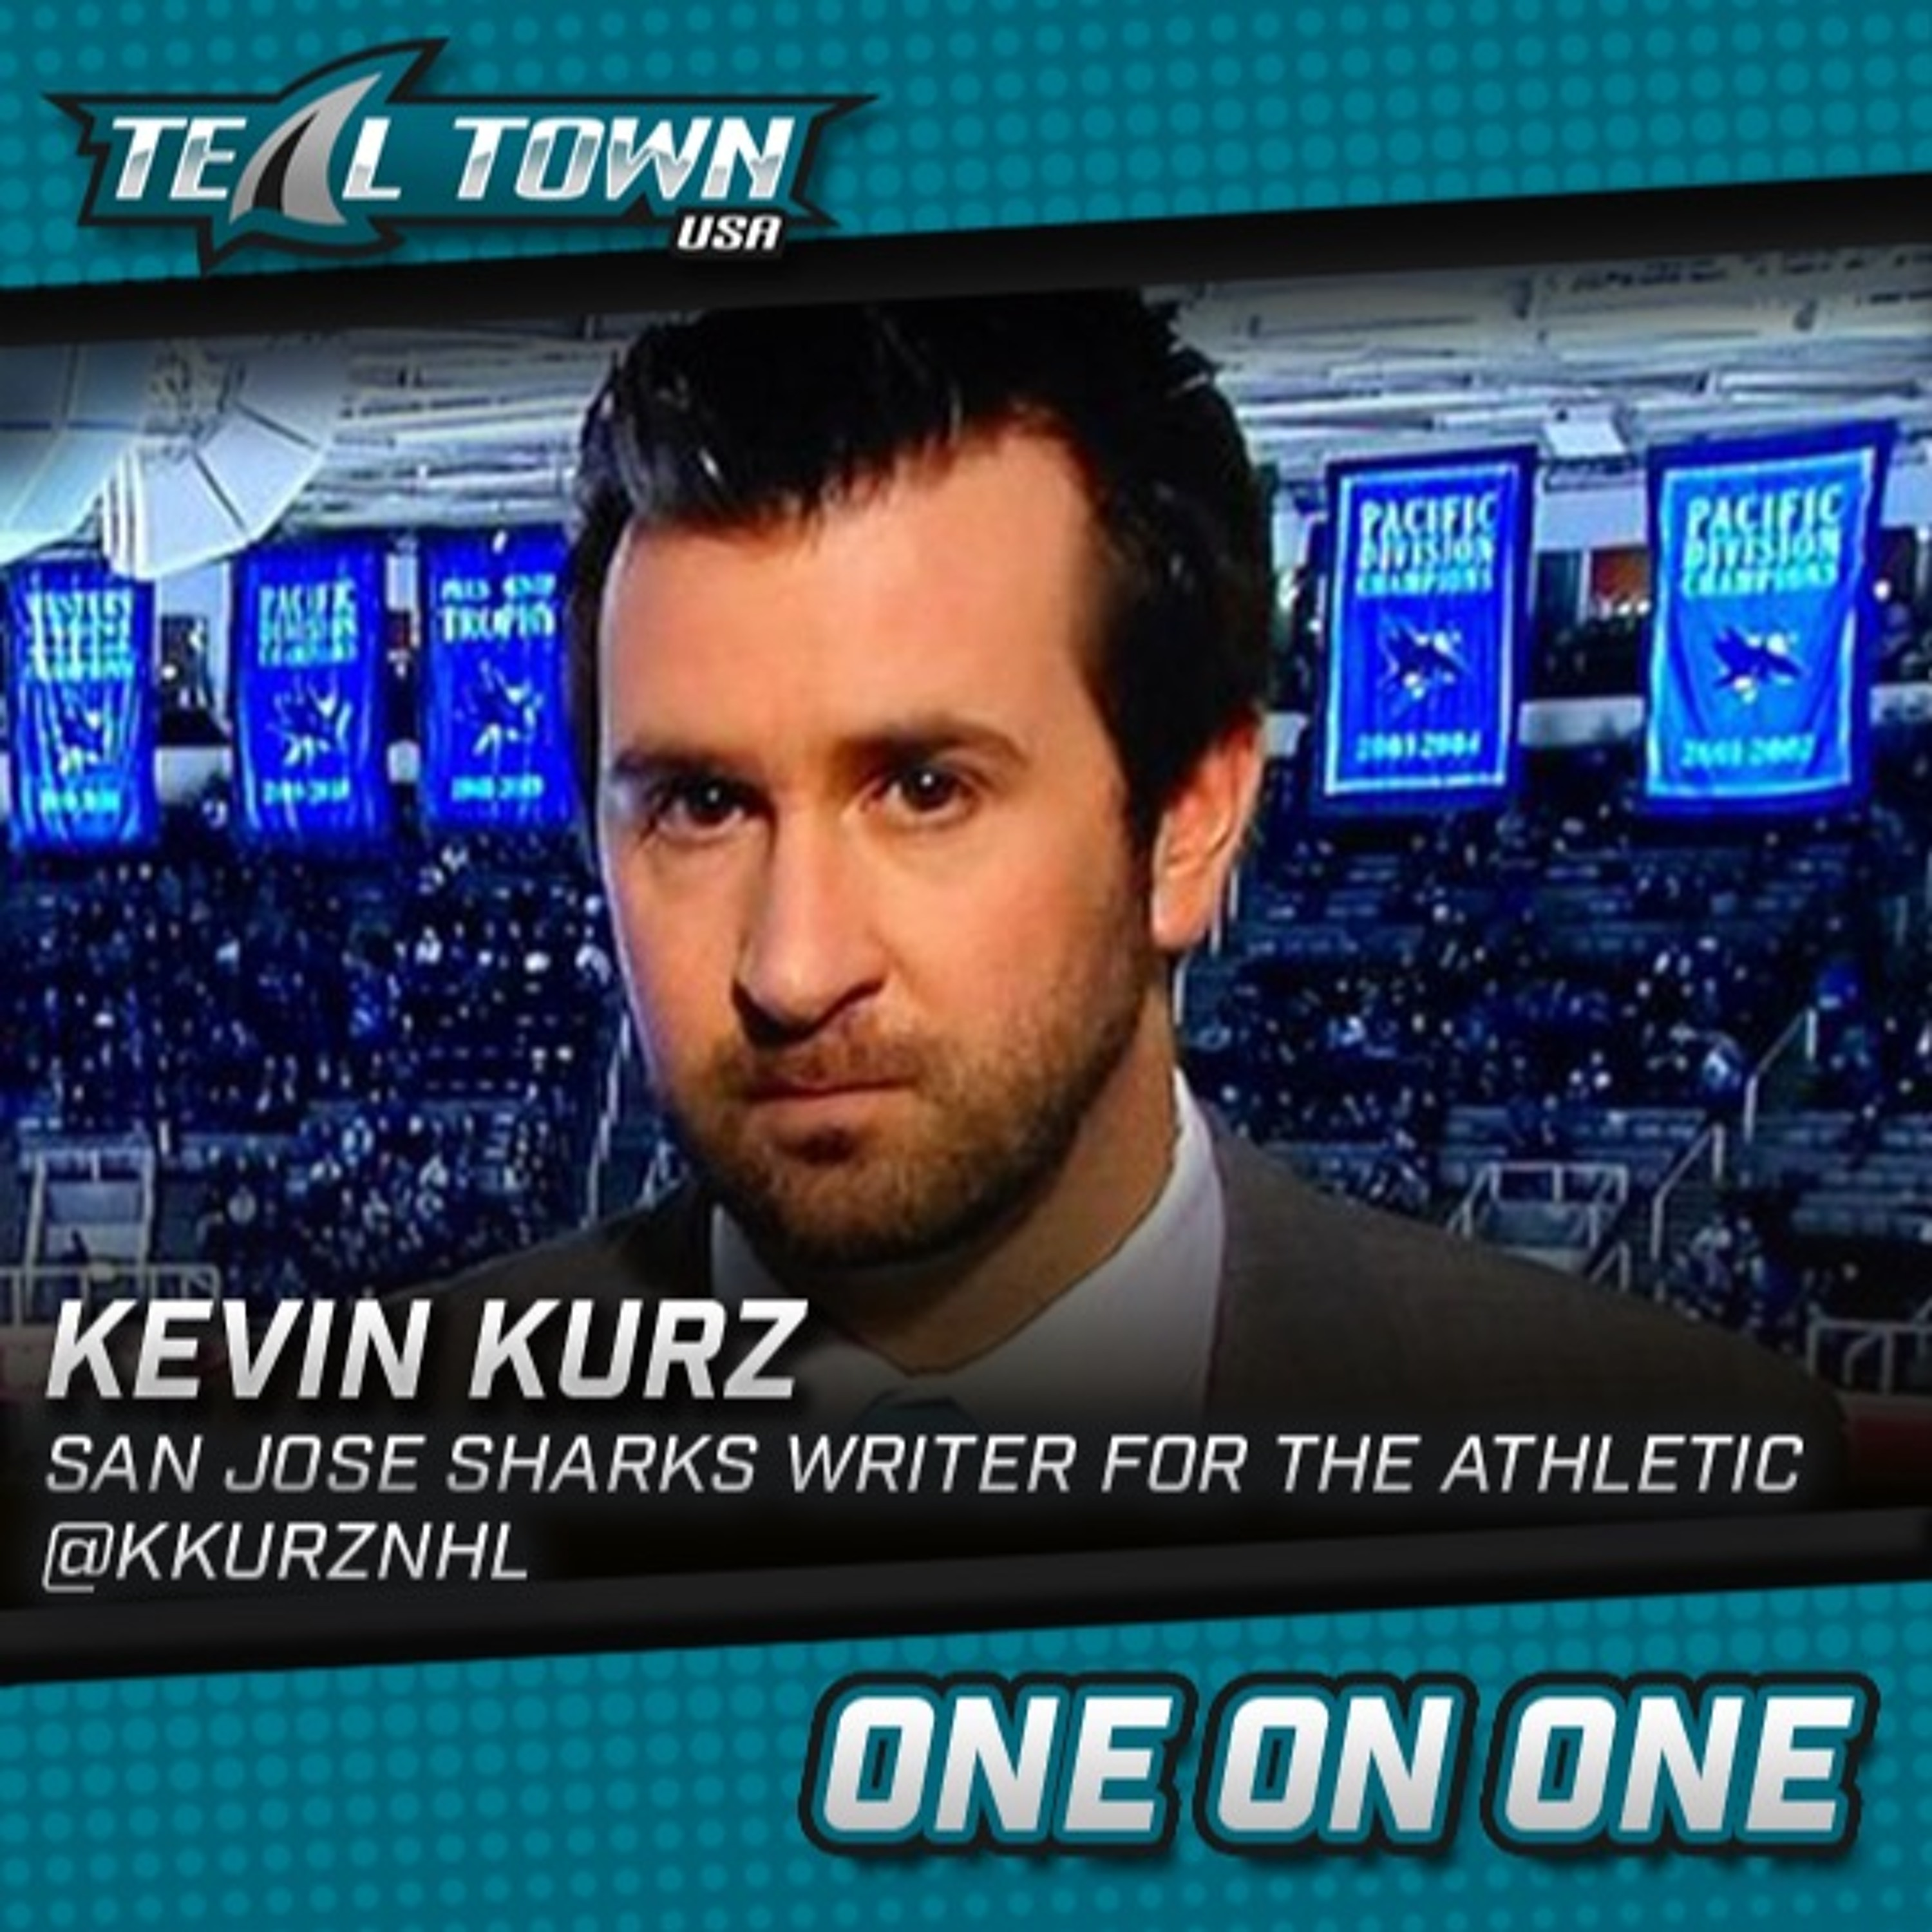 One on One with Kevin Kurz, San Jose Sharks writer for The Athletic